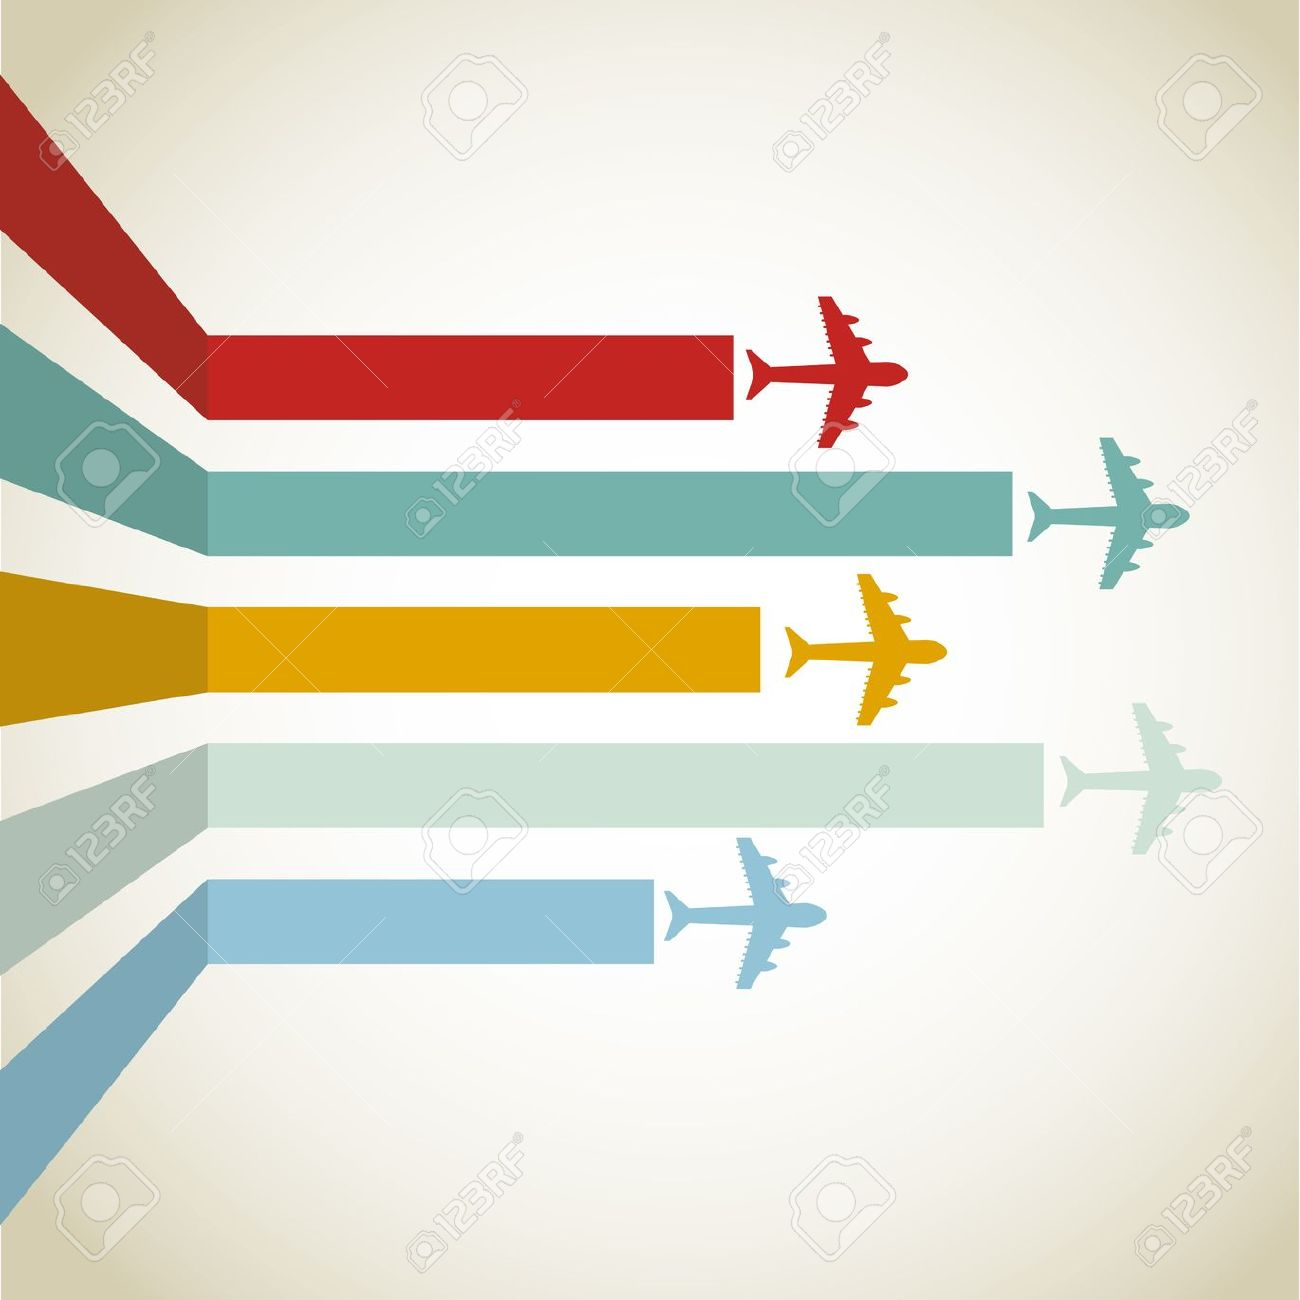 Airlines Stock Vector Illustration And Royalty Free Airlines.